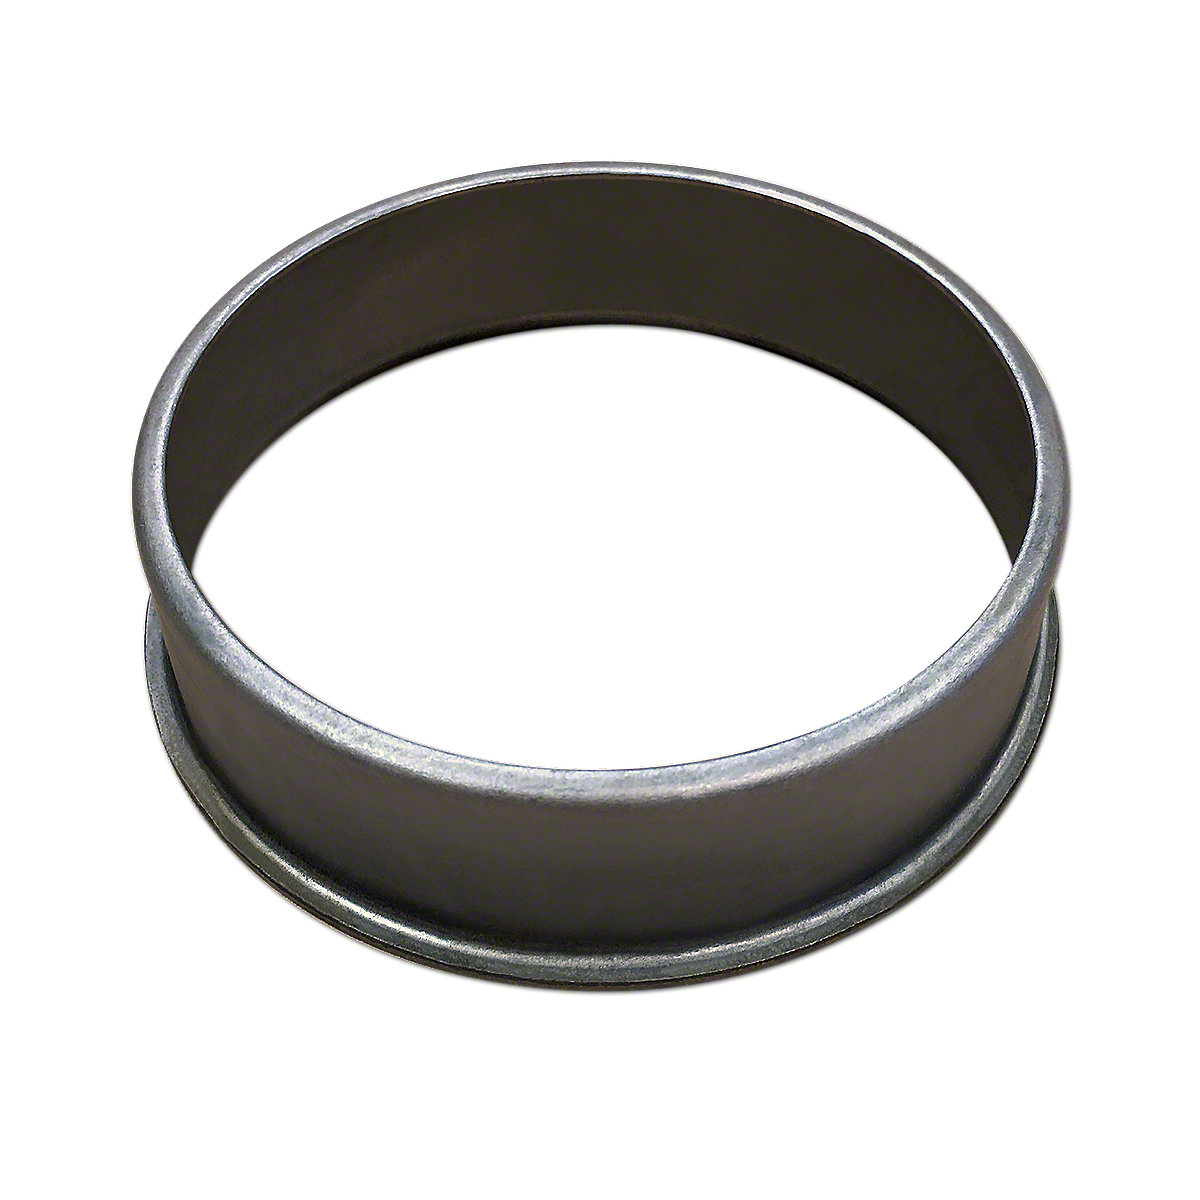 IHS3660Front Wheel Seal Retainer (Wear Sleeve)